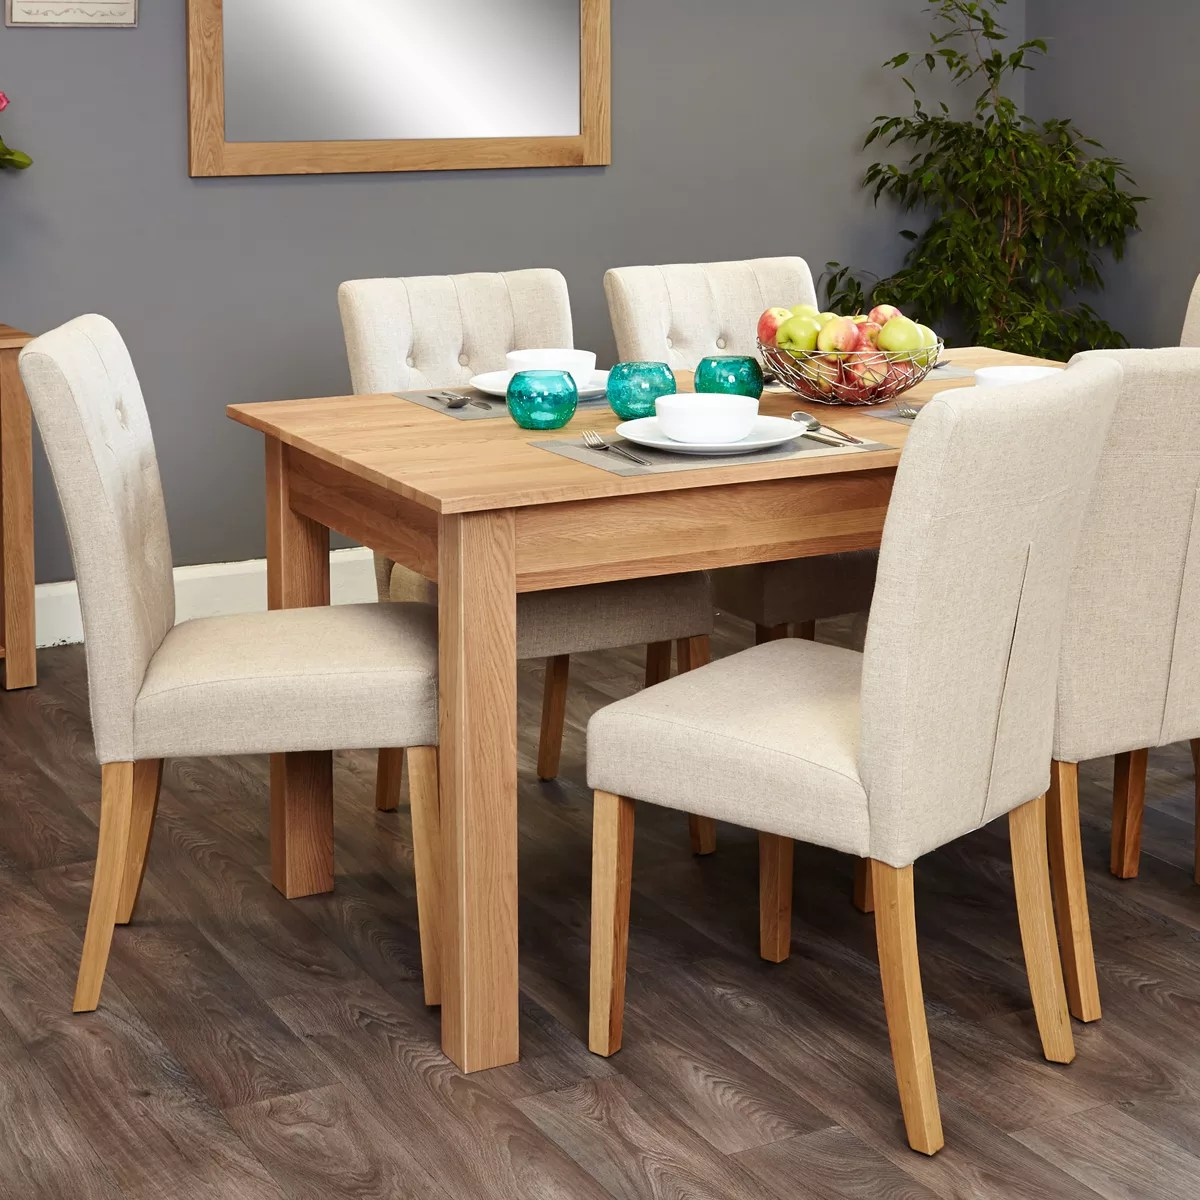 Cor Möbel Mobel Oak 4 6 Seat Table And 6 Cream Chairs